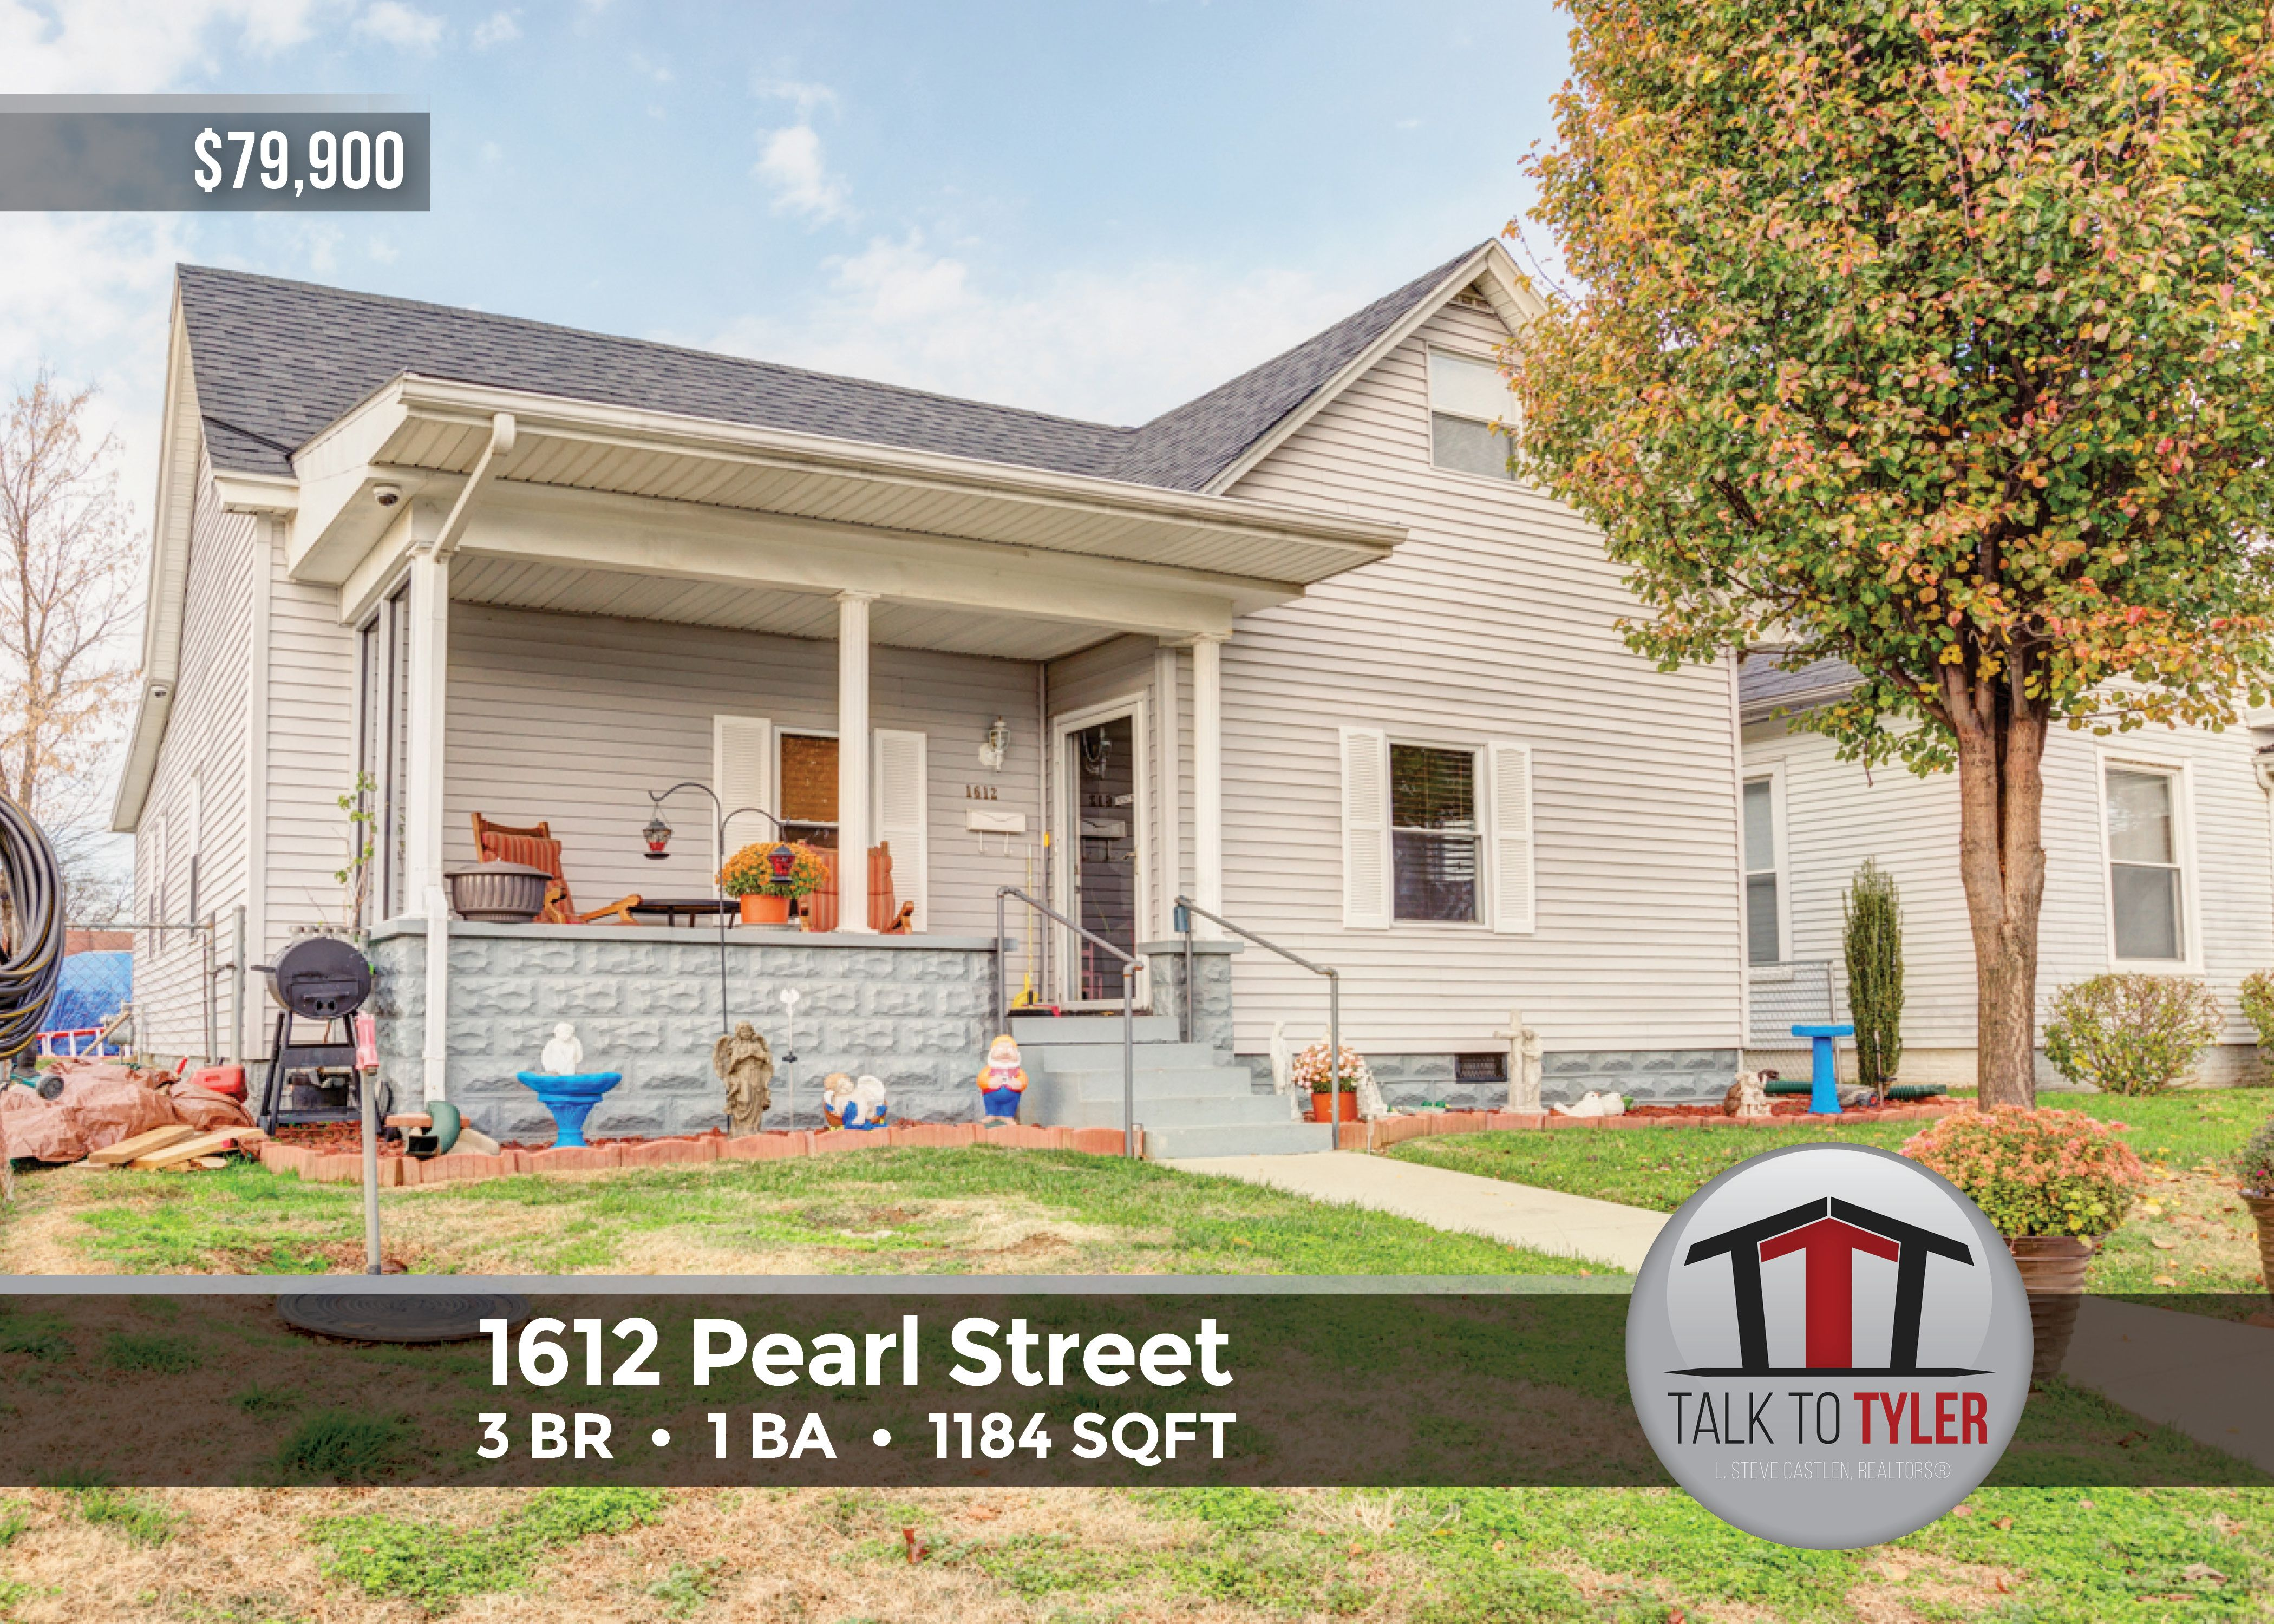 Stop paying rent! This home has been updated and is ready